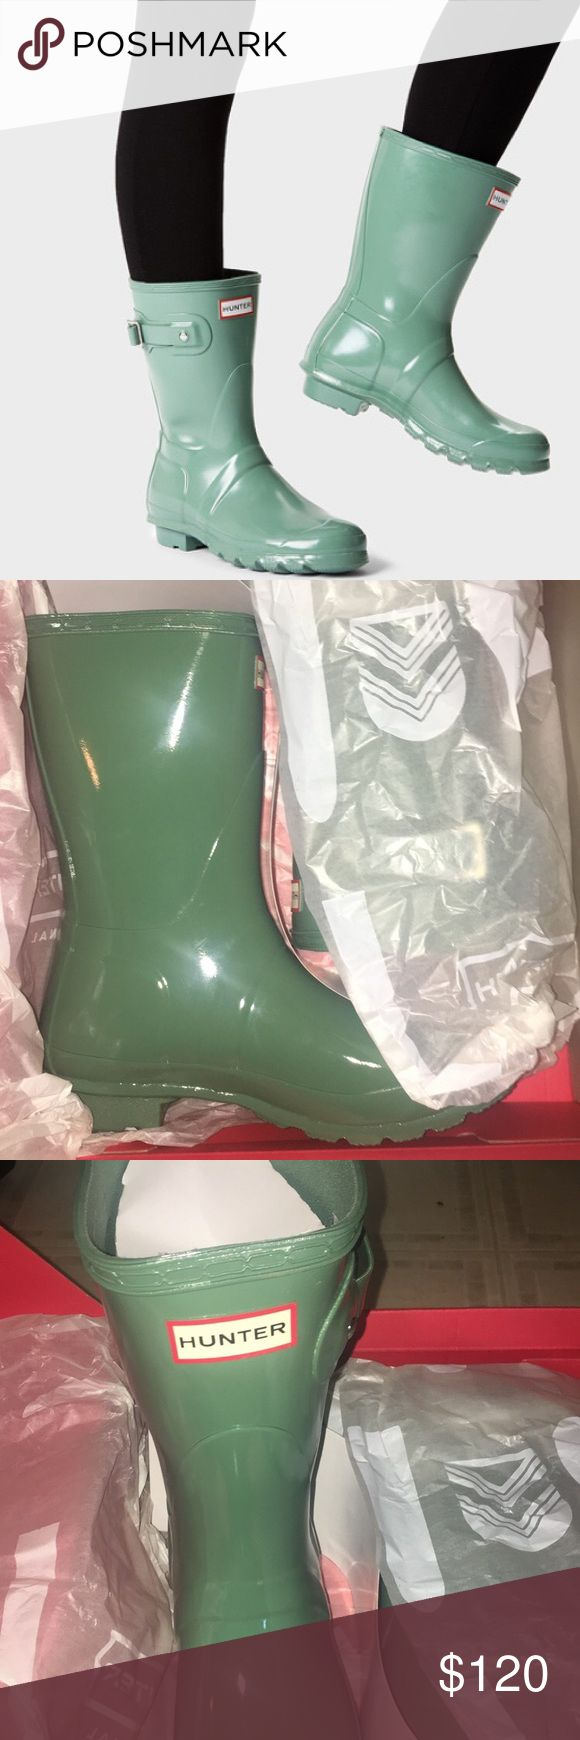 Short hunters boots New in box succulent green hunter boots. Size 7, euro size 38. I'm a 7.5 and I always wear a 7 in hunters Hunter Shoes Winter & Rain Boots